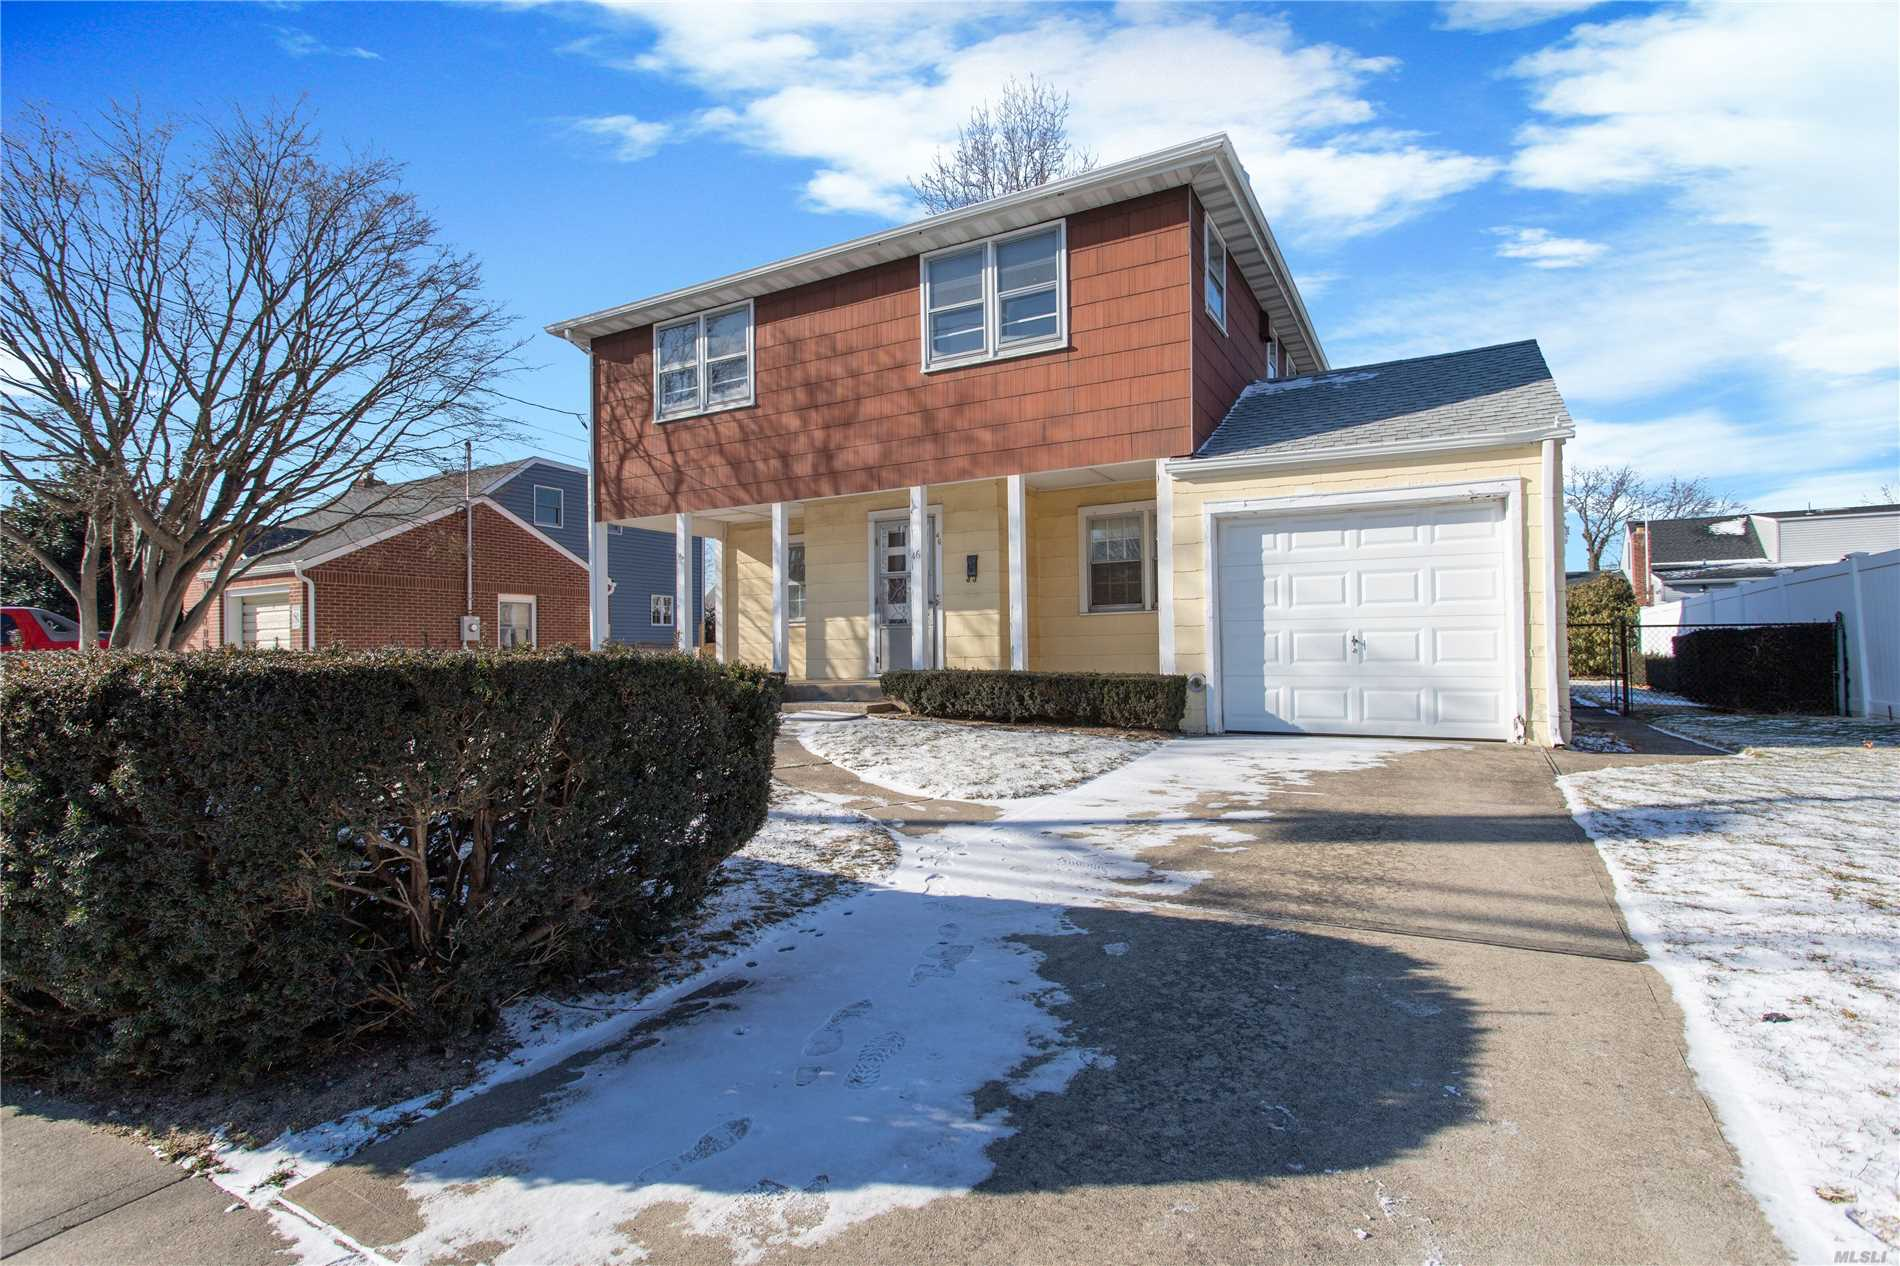 Super Clean Colonial In Prime Plainedge School District #18! Features 5 Large Bedrooms, 2 Full Baths, Rocking Chair Front Porch, Partially Finished Basement. Mid Block Location, In-Ground Sprinklers, Garage And Much More